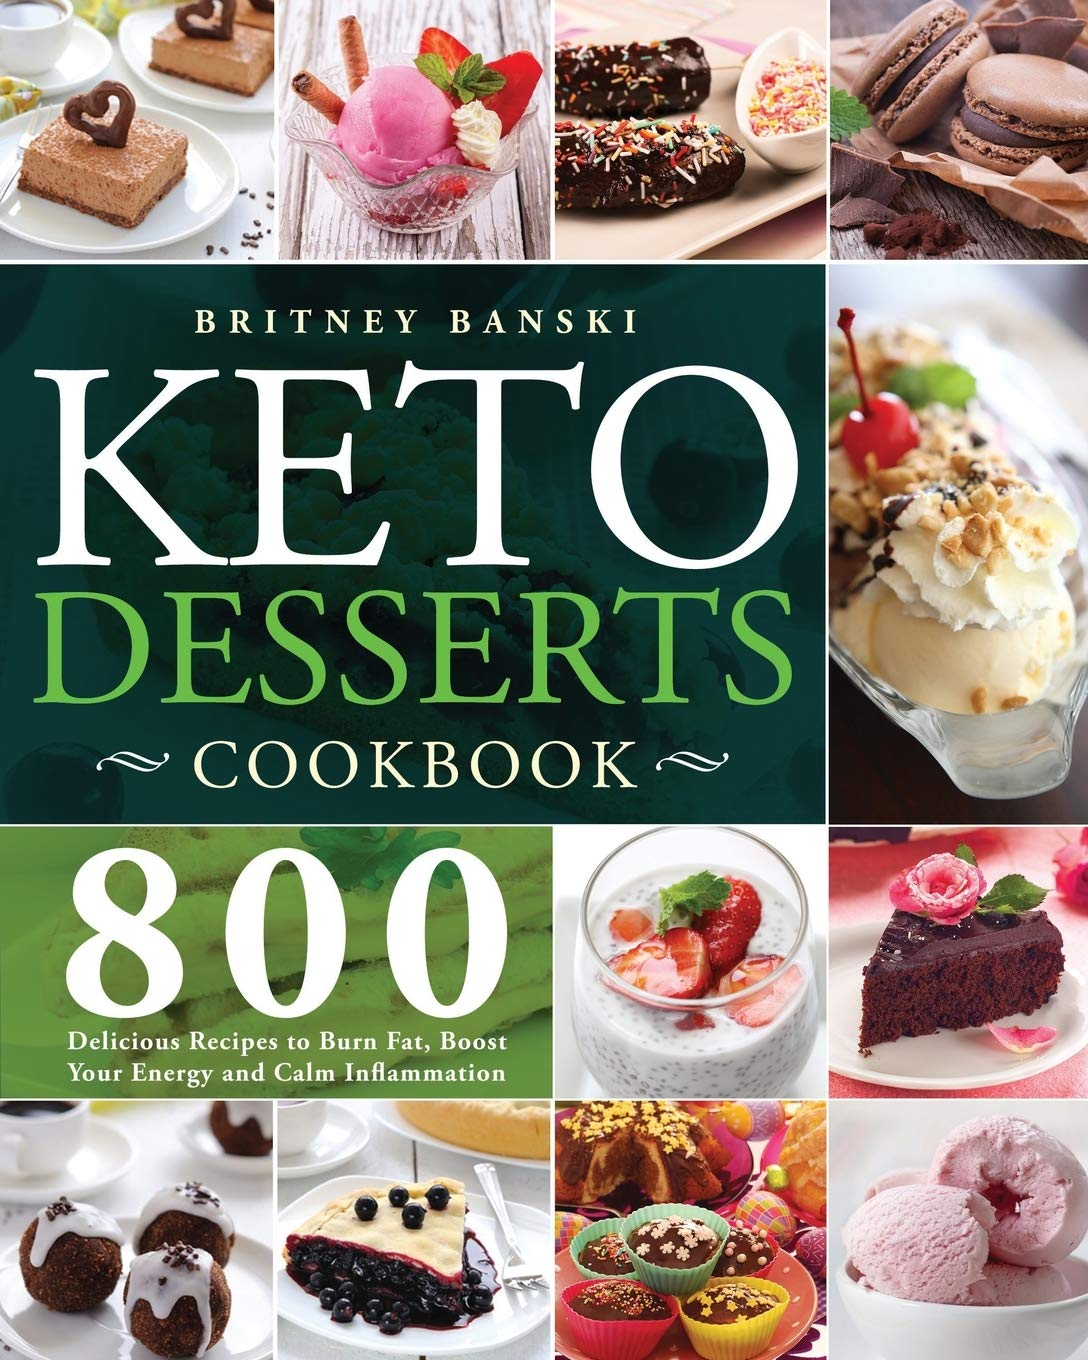 Keto Desserts Cookbook: 800 Delicious Recipes to Burn Fat, Boost Your Energy and Calm Inflammation 1